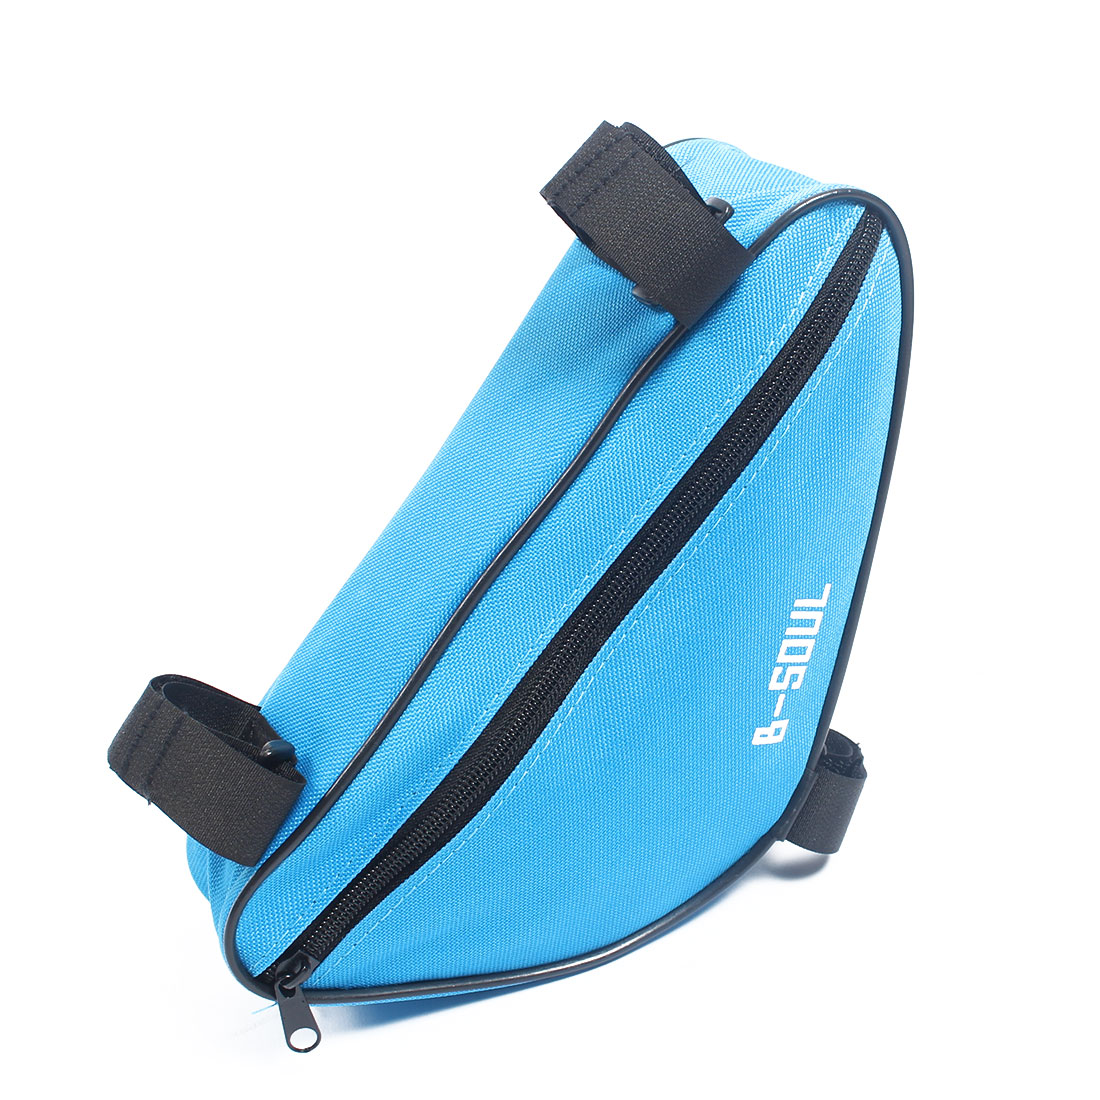 Cycling Bicycle Blue Front Frame Triangle Bag Pouch Holder B-SOUL Authorized